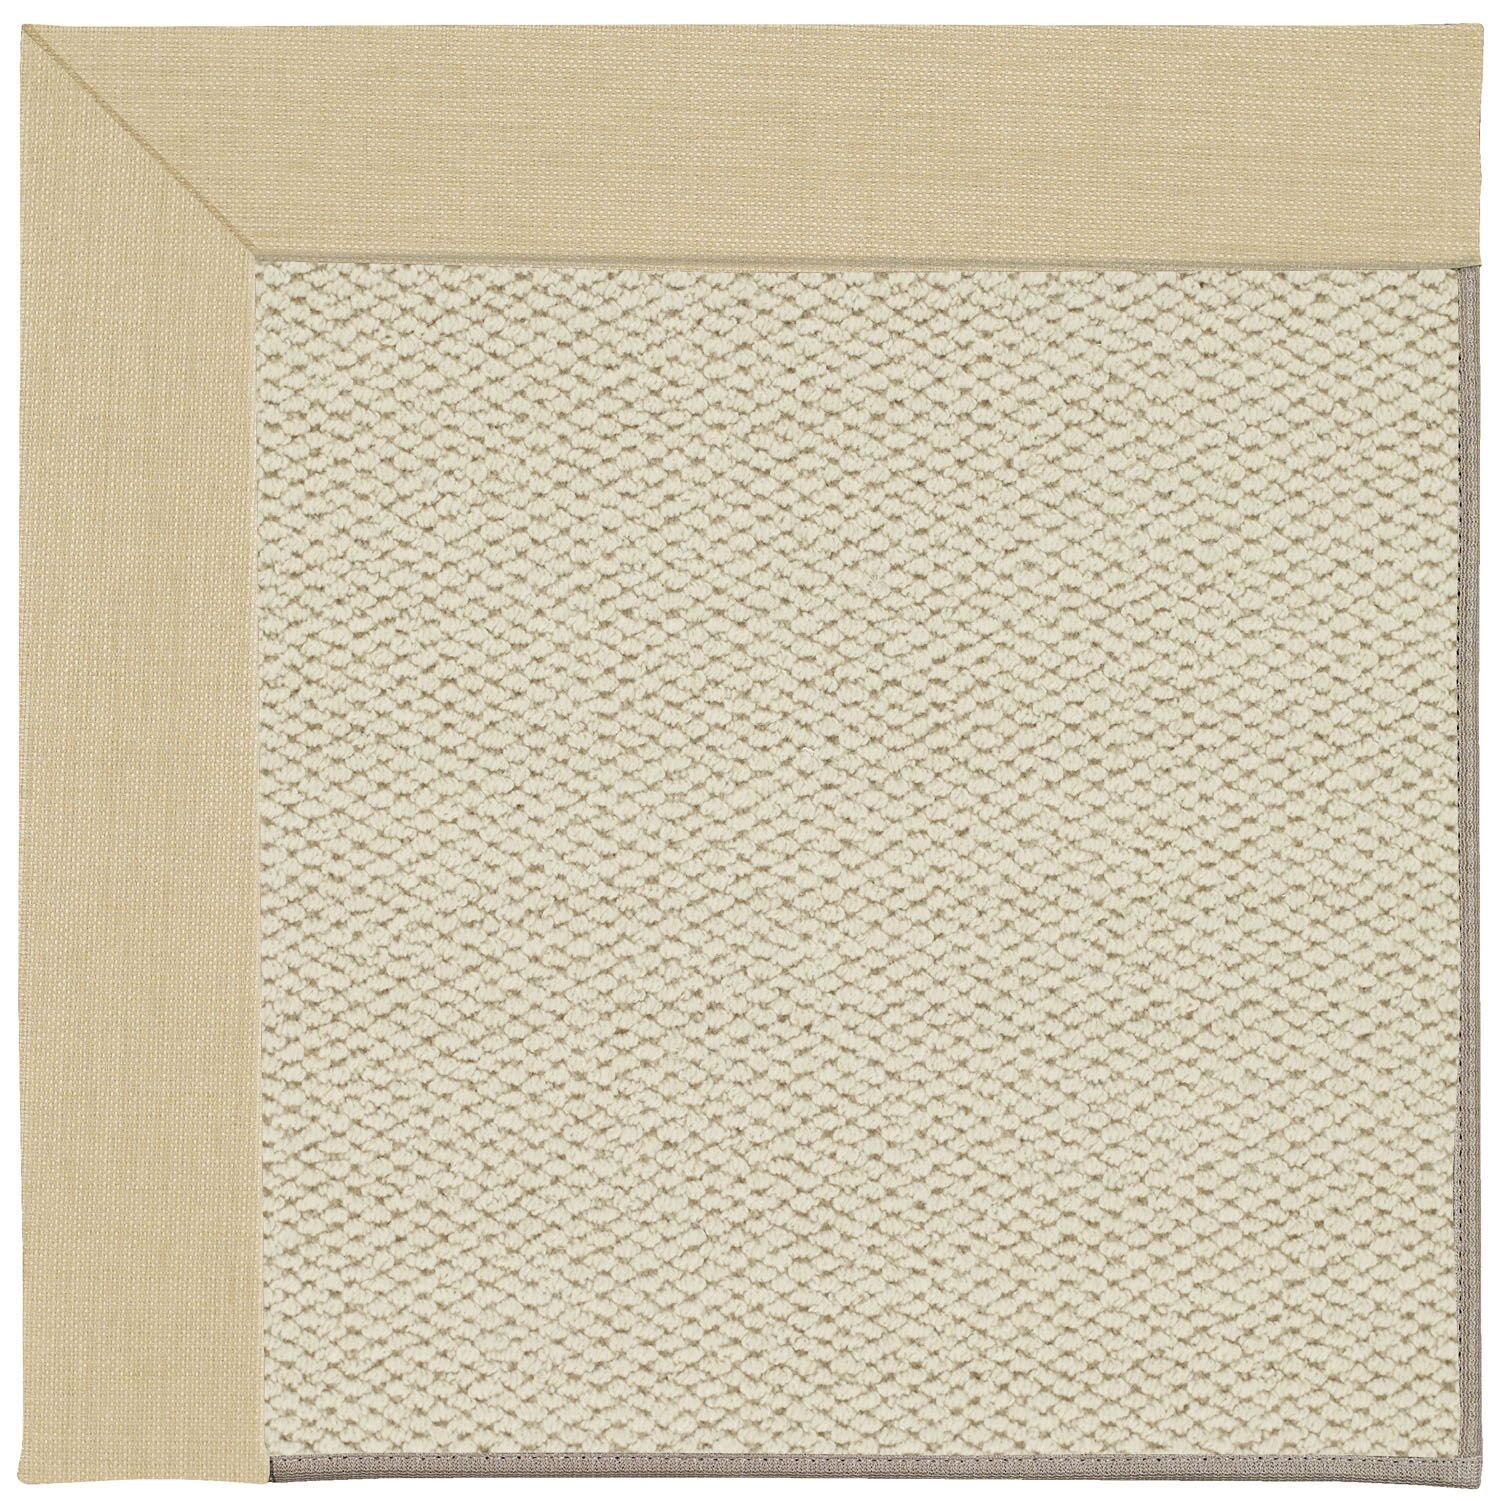 Barrett Linen Machine Tufted Ivory/Beige Area Rug Rug Size: Rectangle 8' x 10'